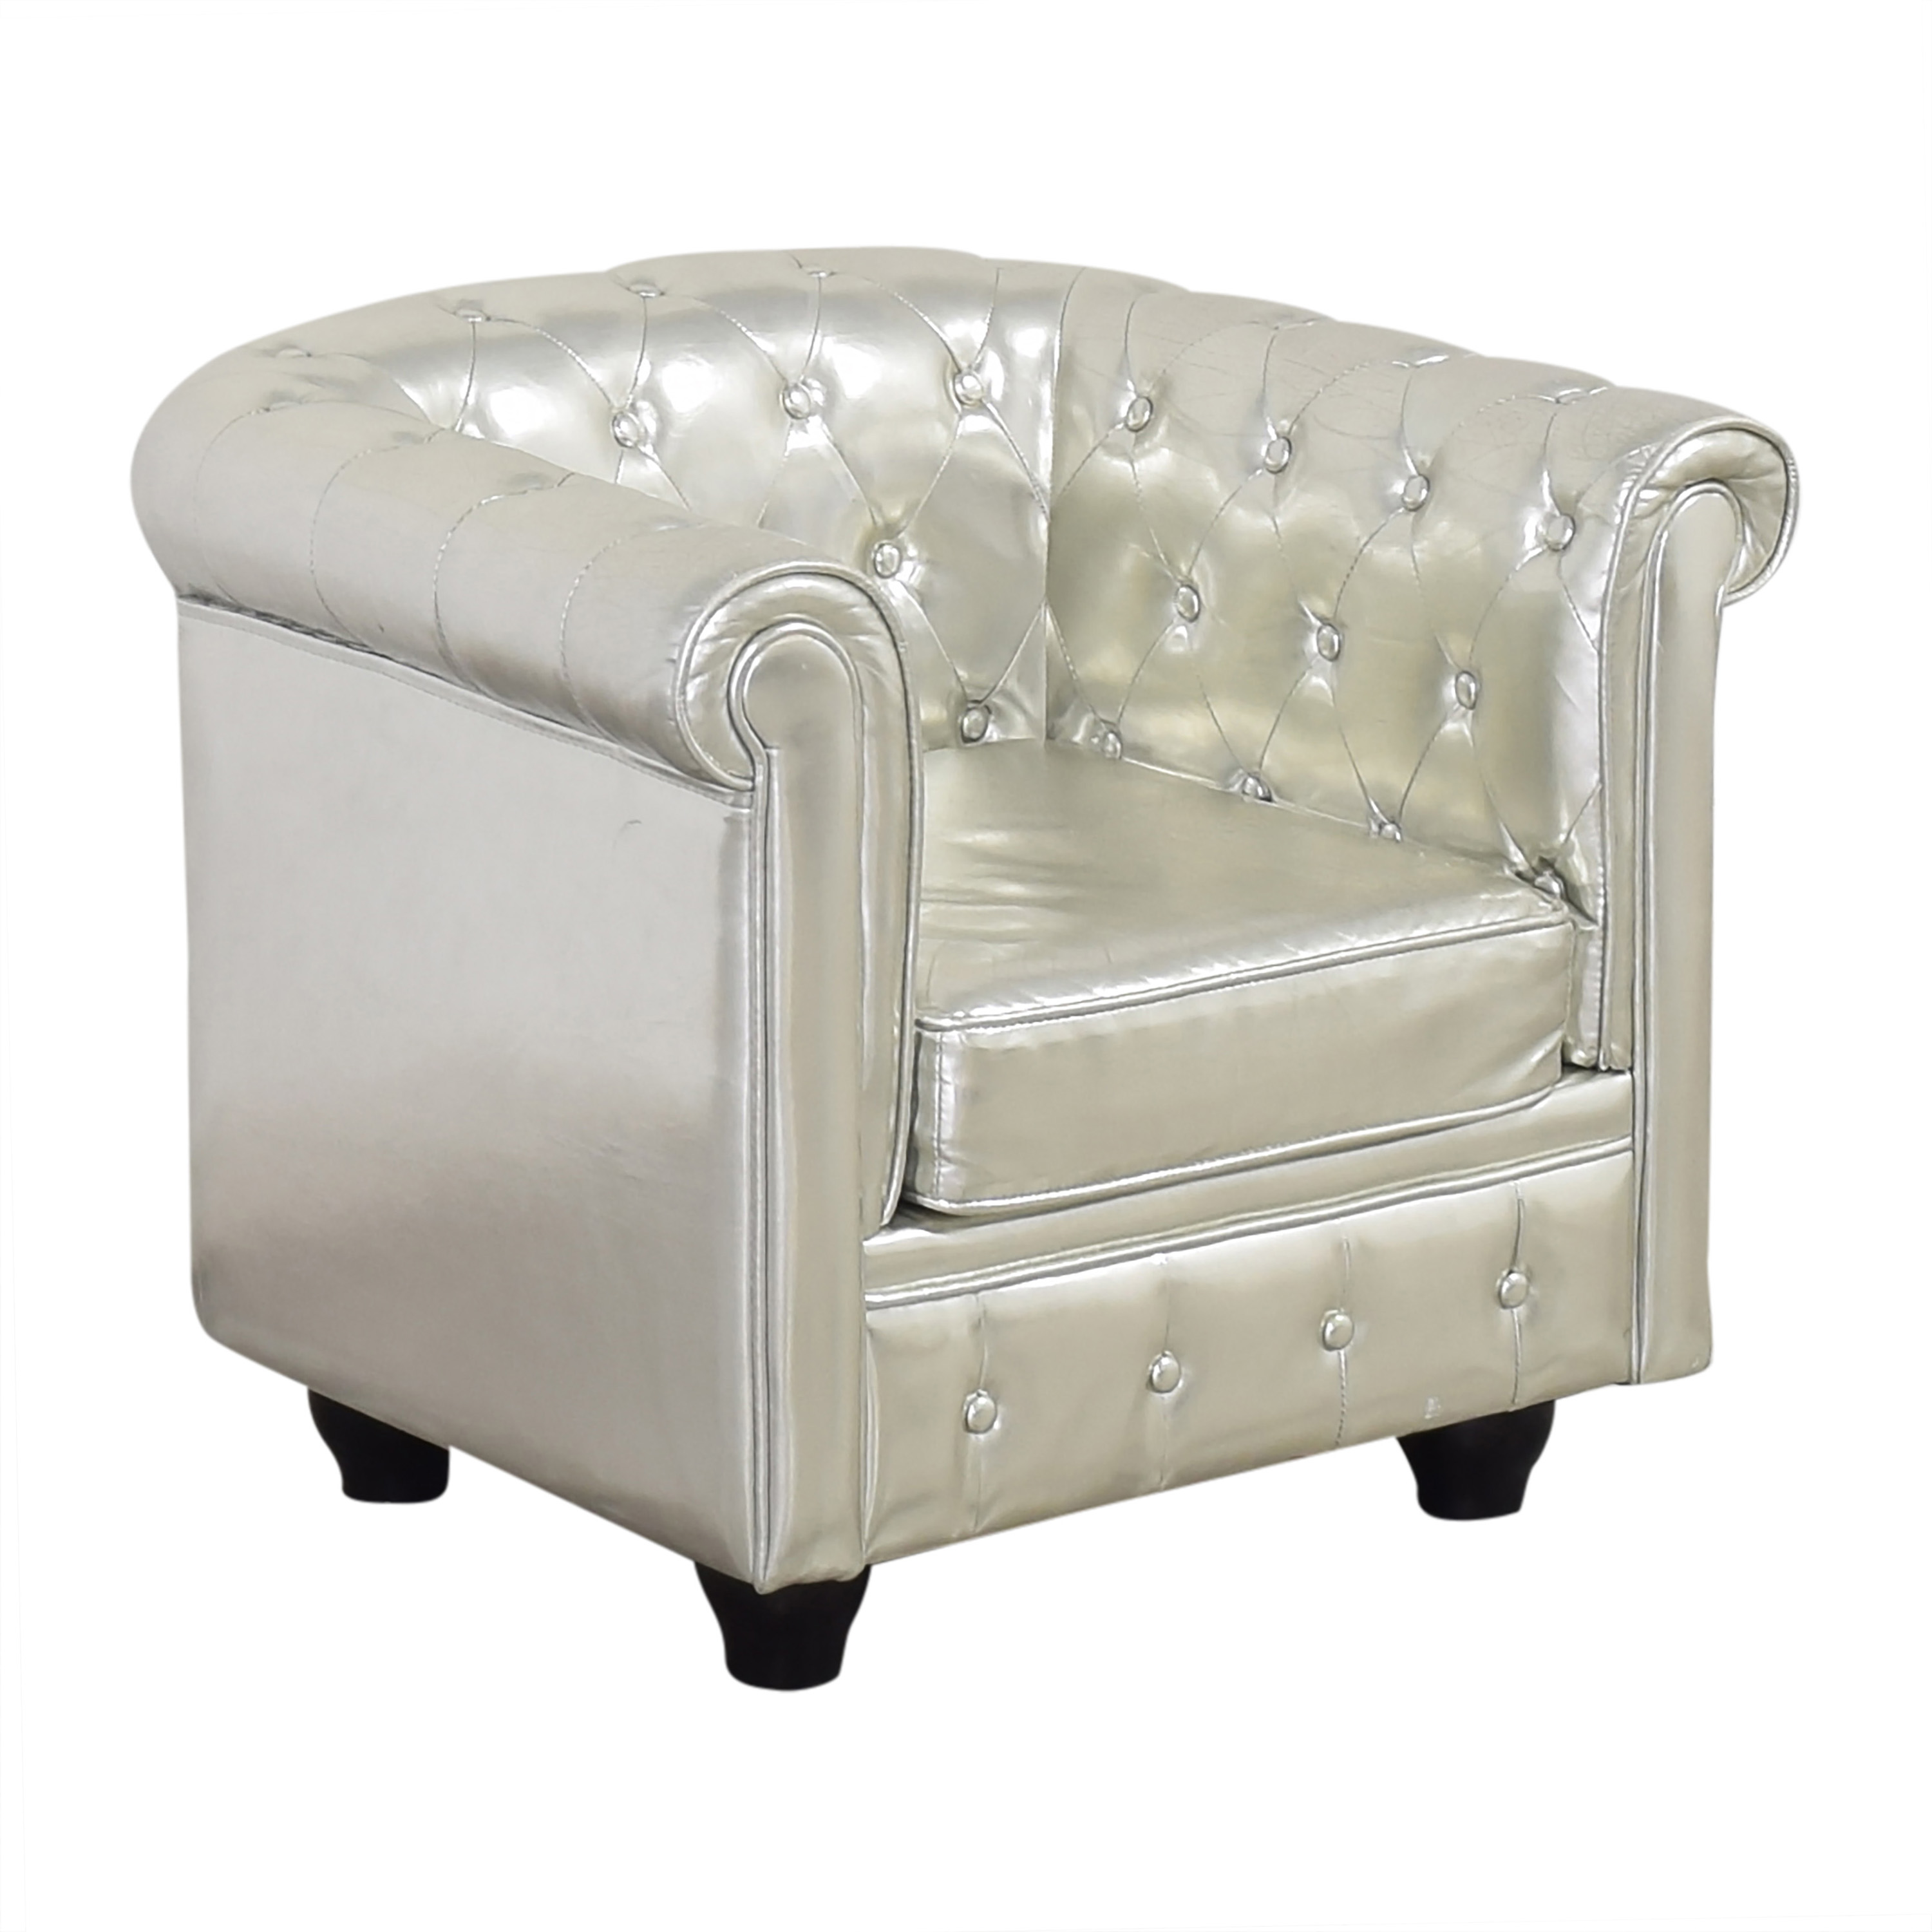 Tufted Club Chair on sale